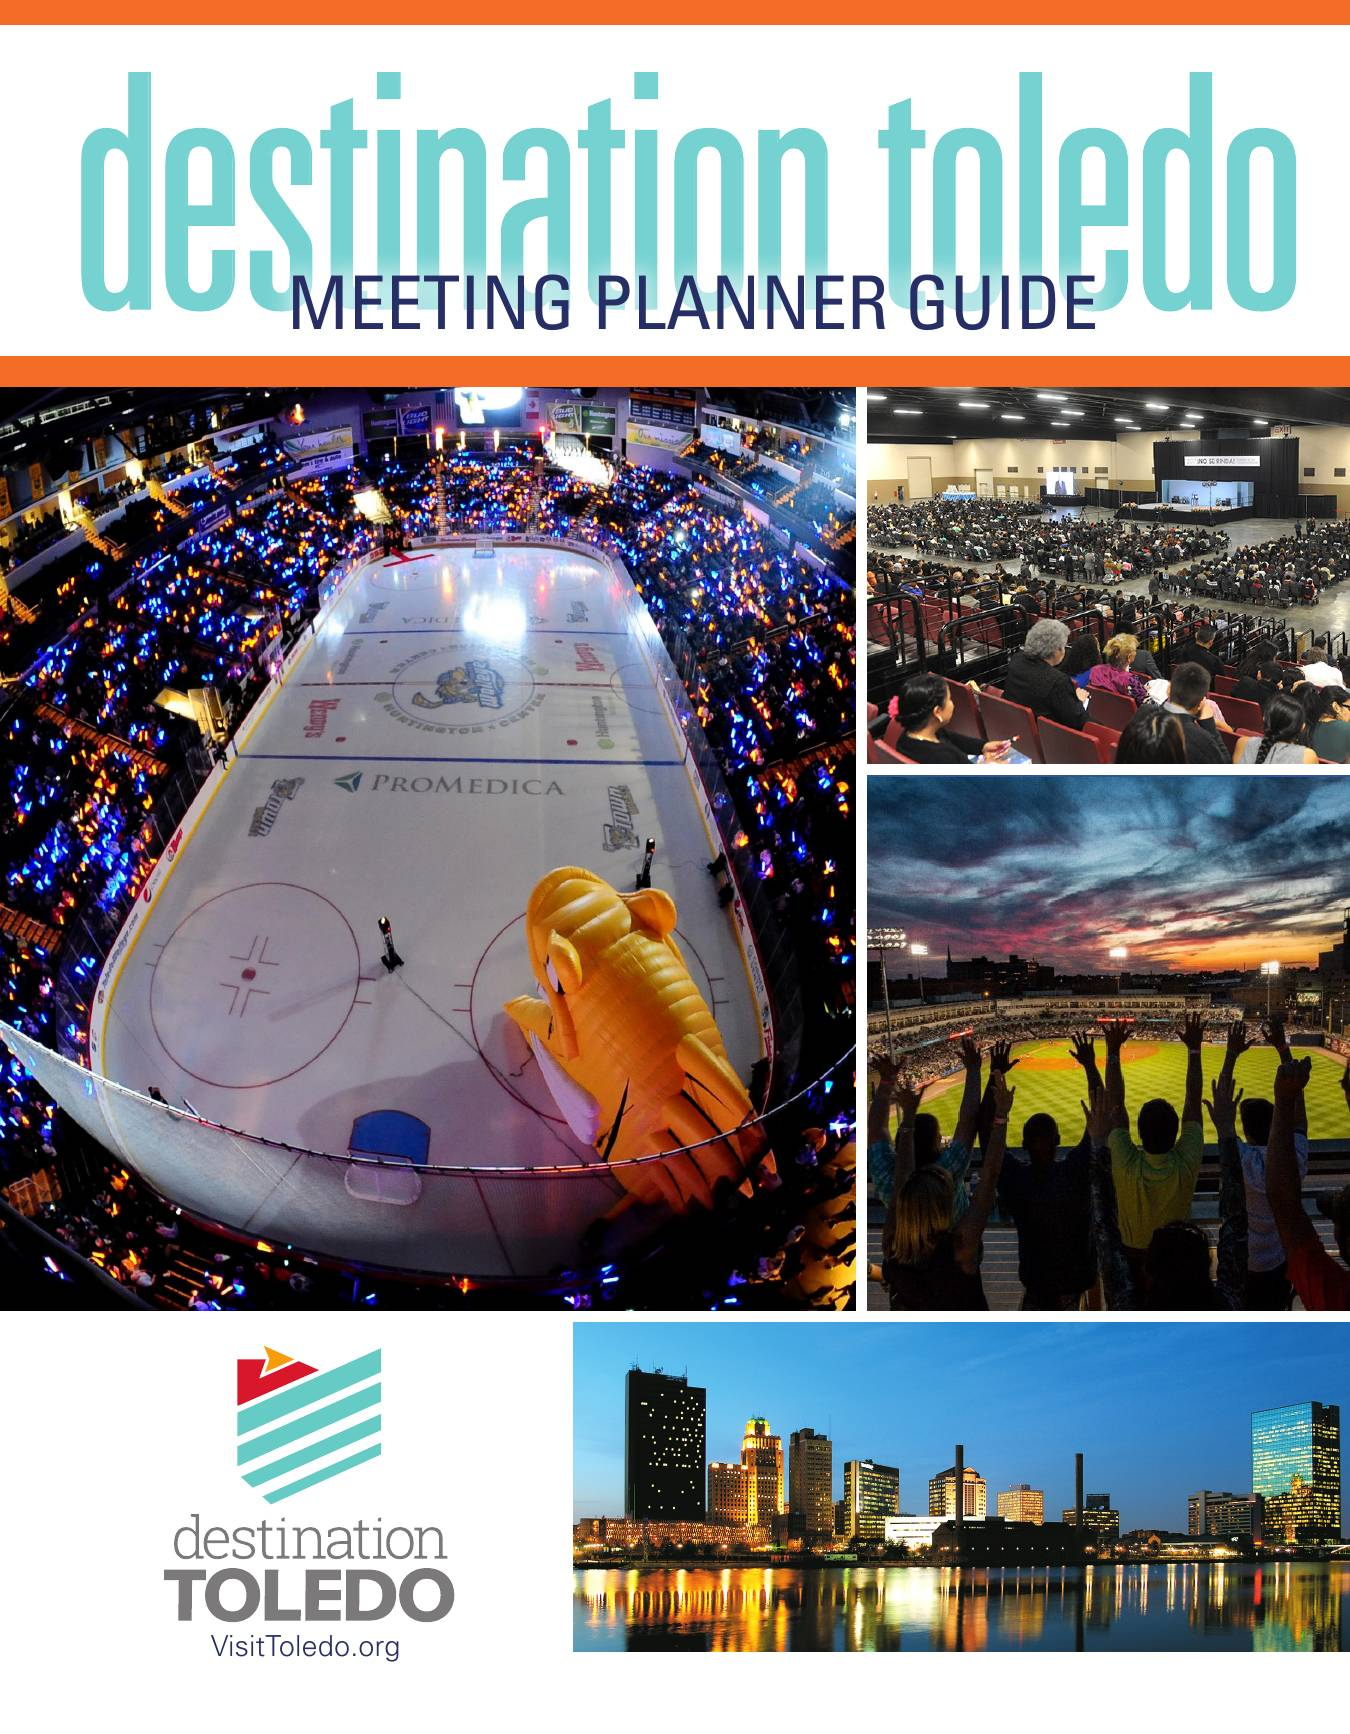 Toledo's Meeting Planner Guide